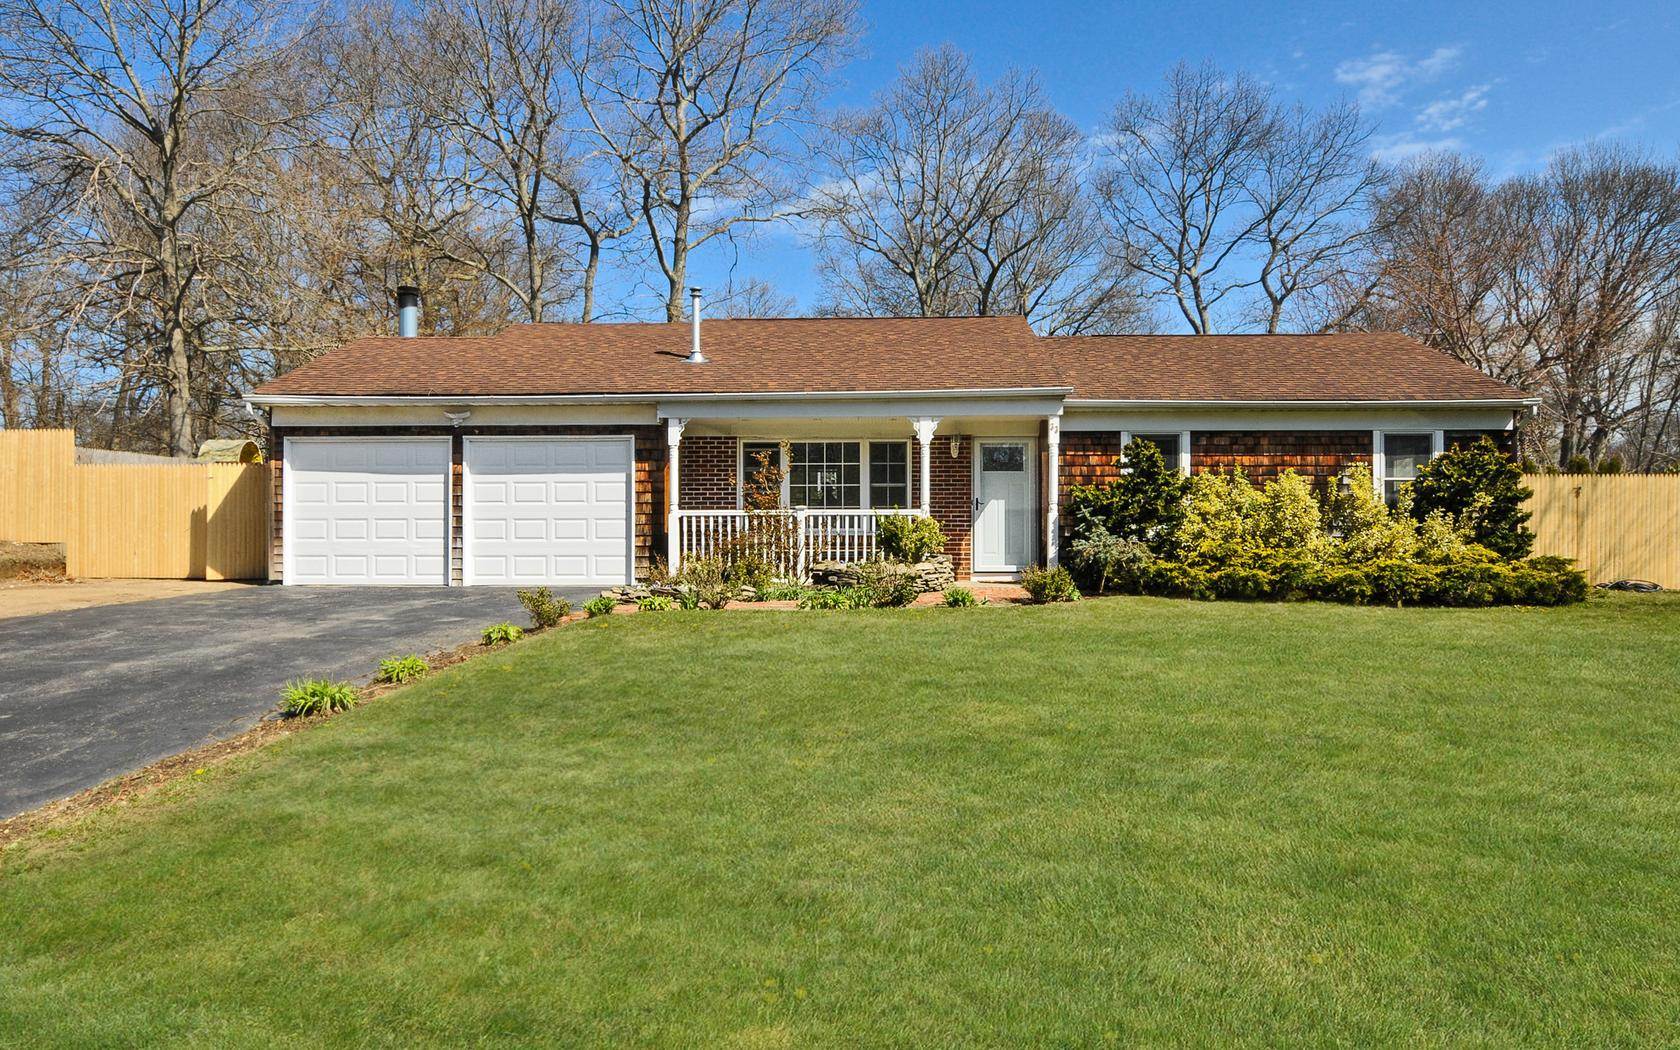 Single Family Home for Sale at Ranch 33 Scenic Hills Dr Ridge, New York, 11961 United States